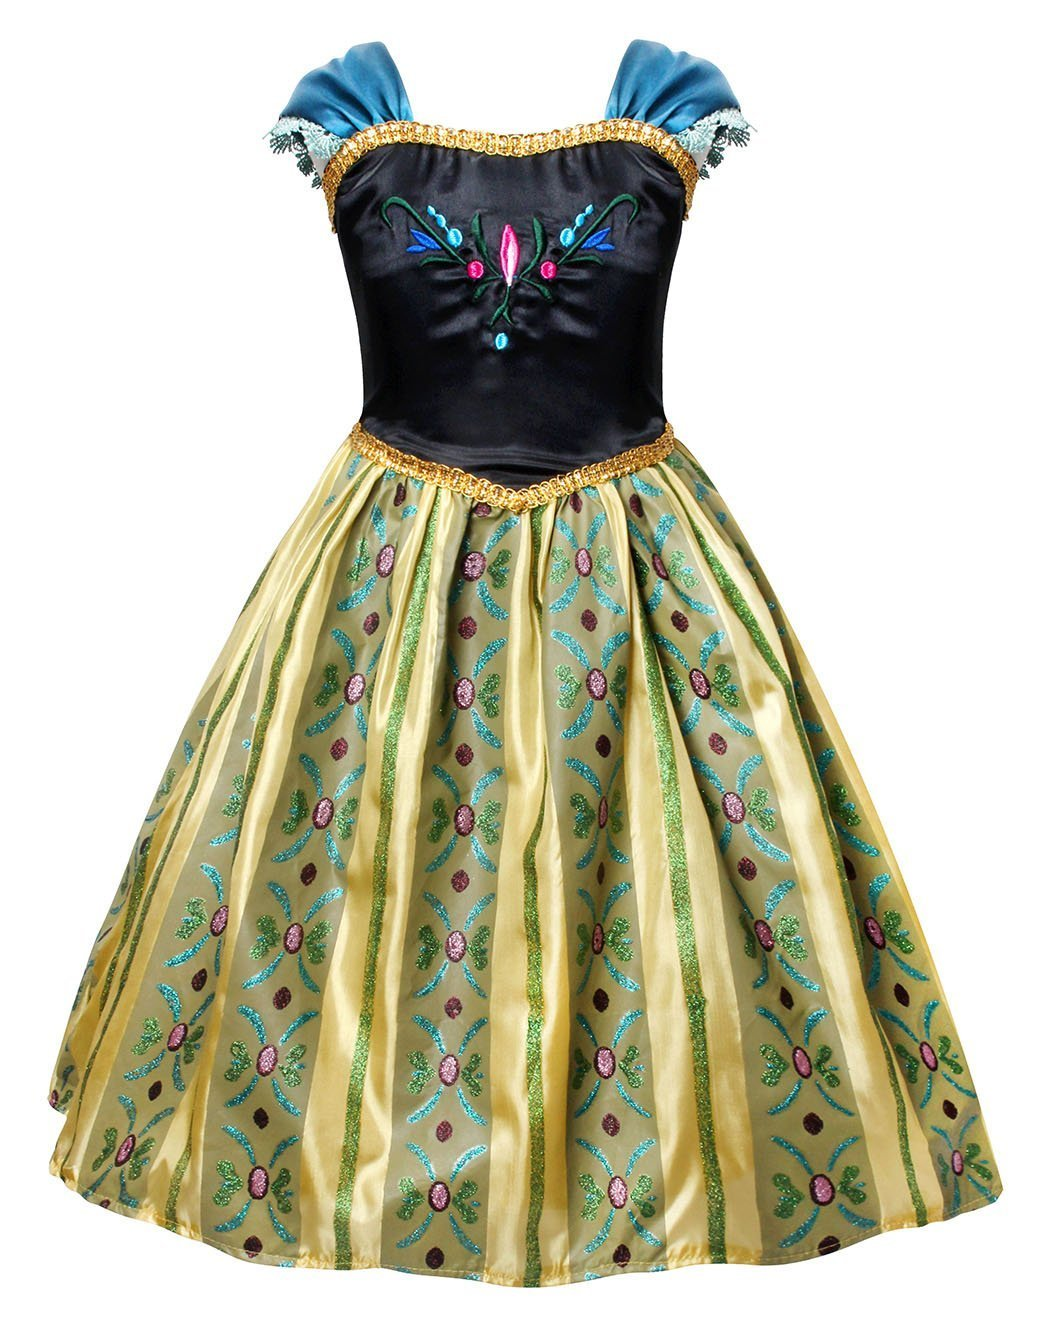 Cotrio Little Girls Anna Coronation Dress Princess Anna Costume Dress up Halloween Cosplay Party Fancy Dresses Size 4T (110, Green 02)